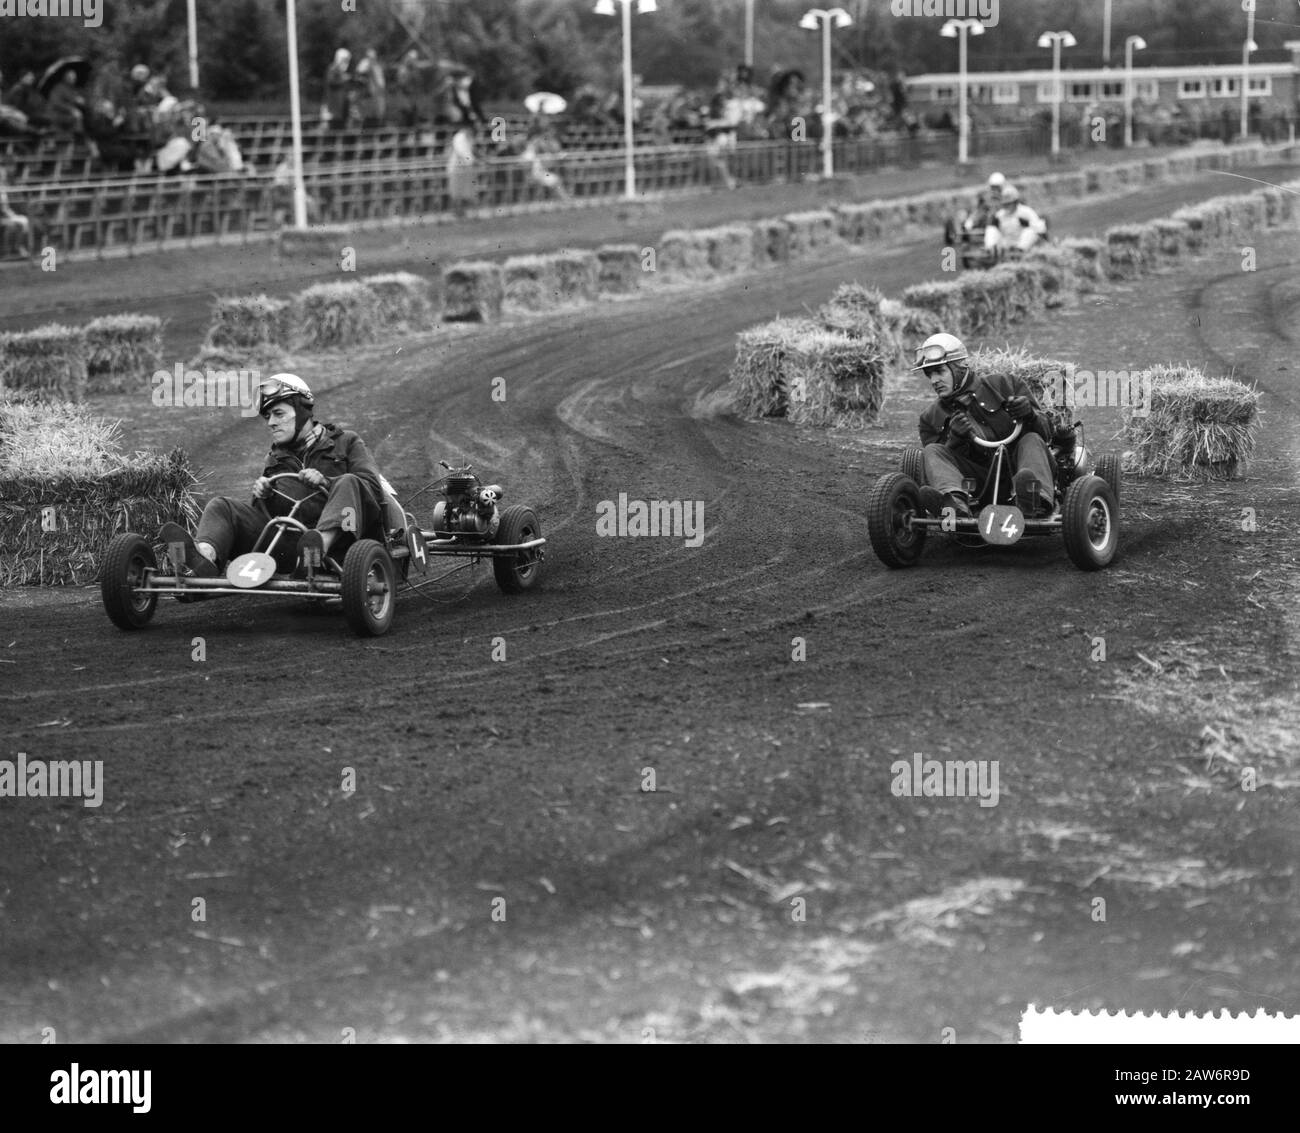 National Karting Competitions In Amsterdam Date July 17 1960